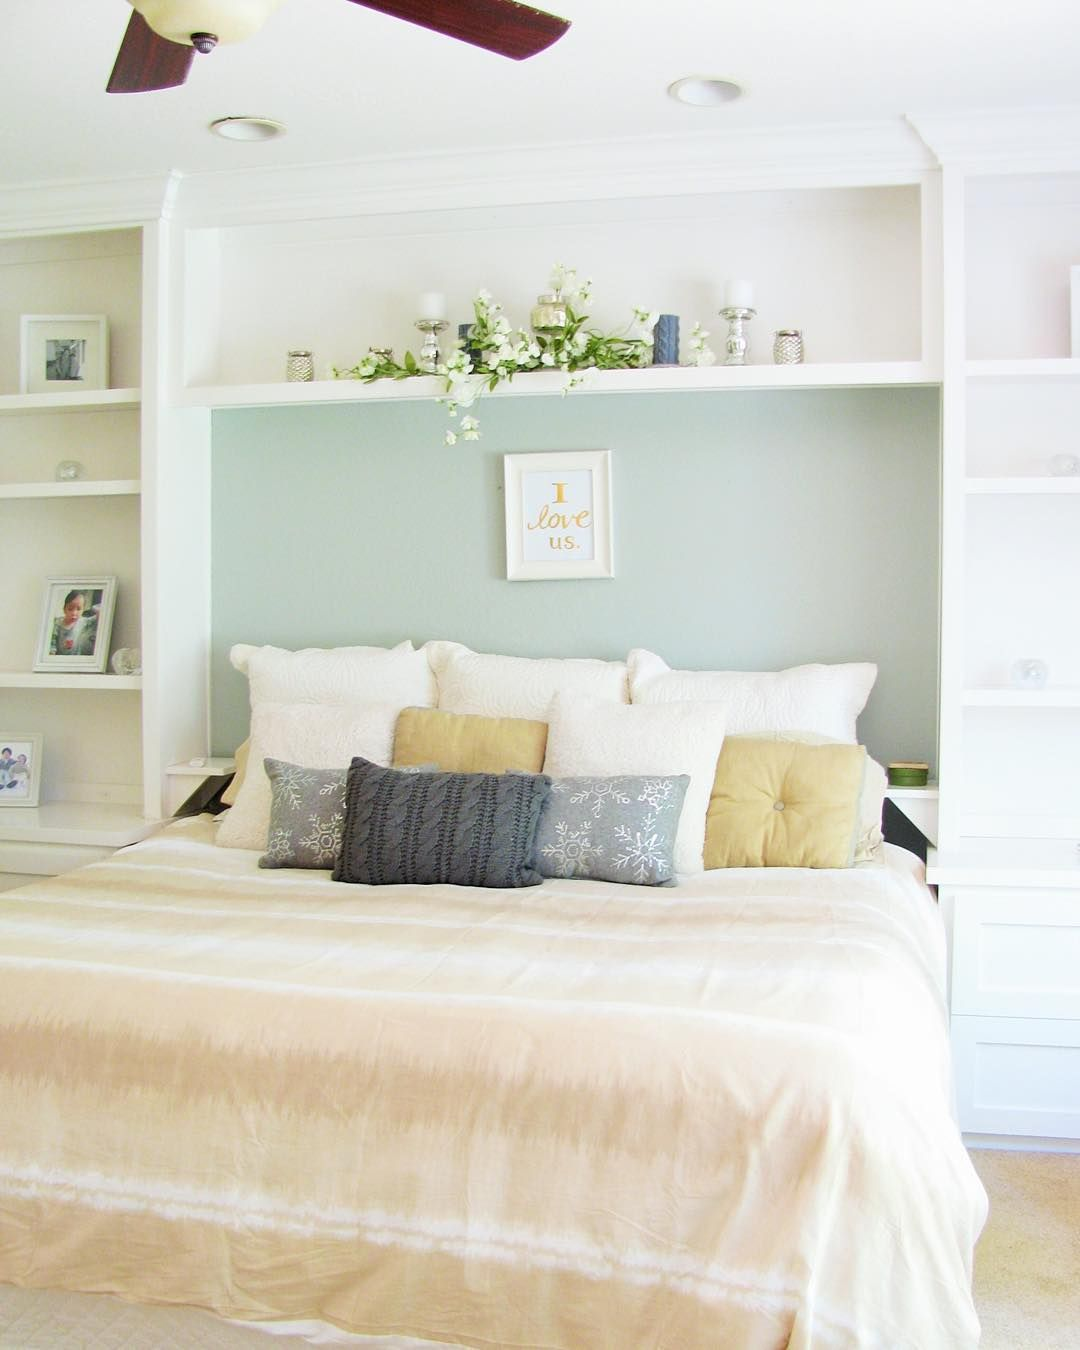 Basement Bedroom Designs: Basement Bedroom Ideas. Shelves Around The Bed For Extra